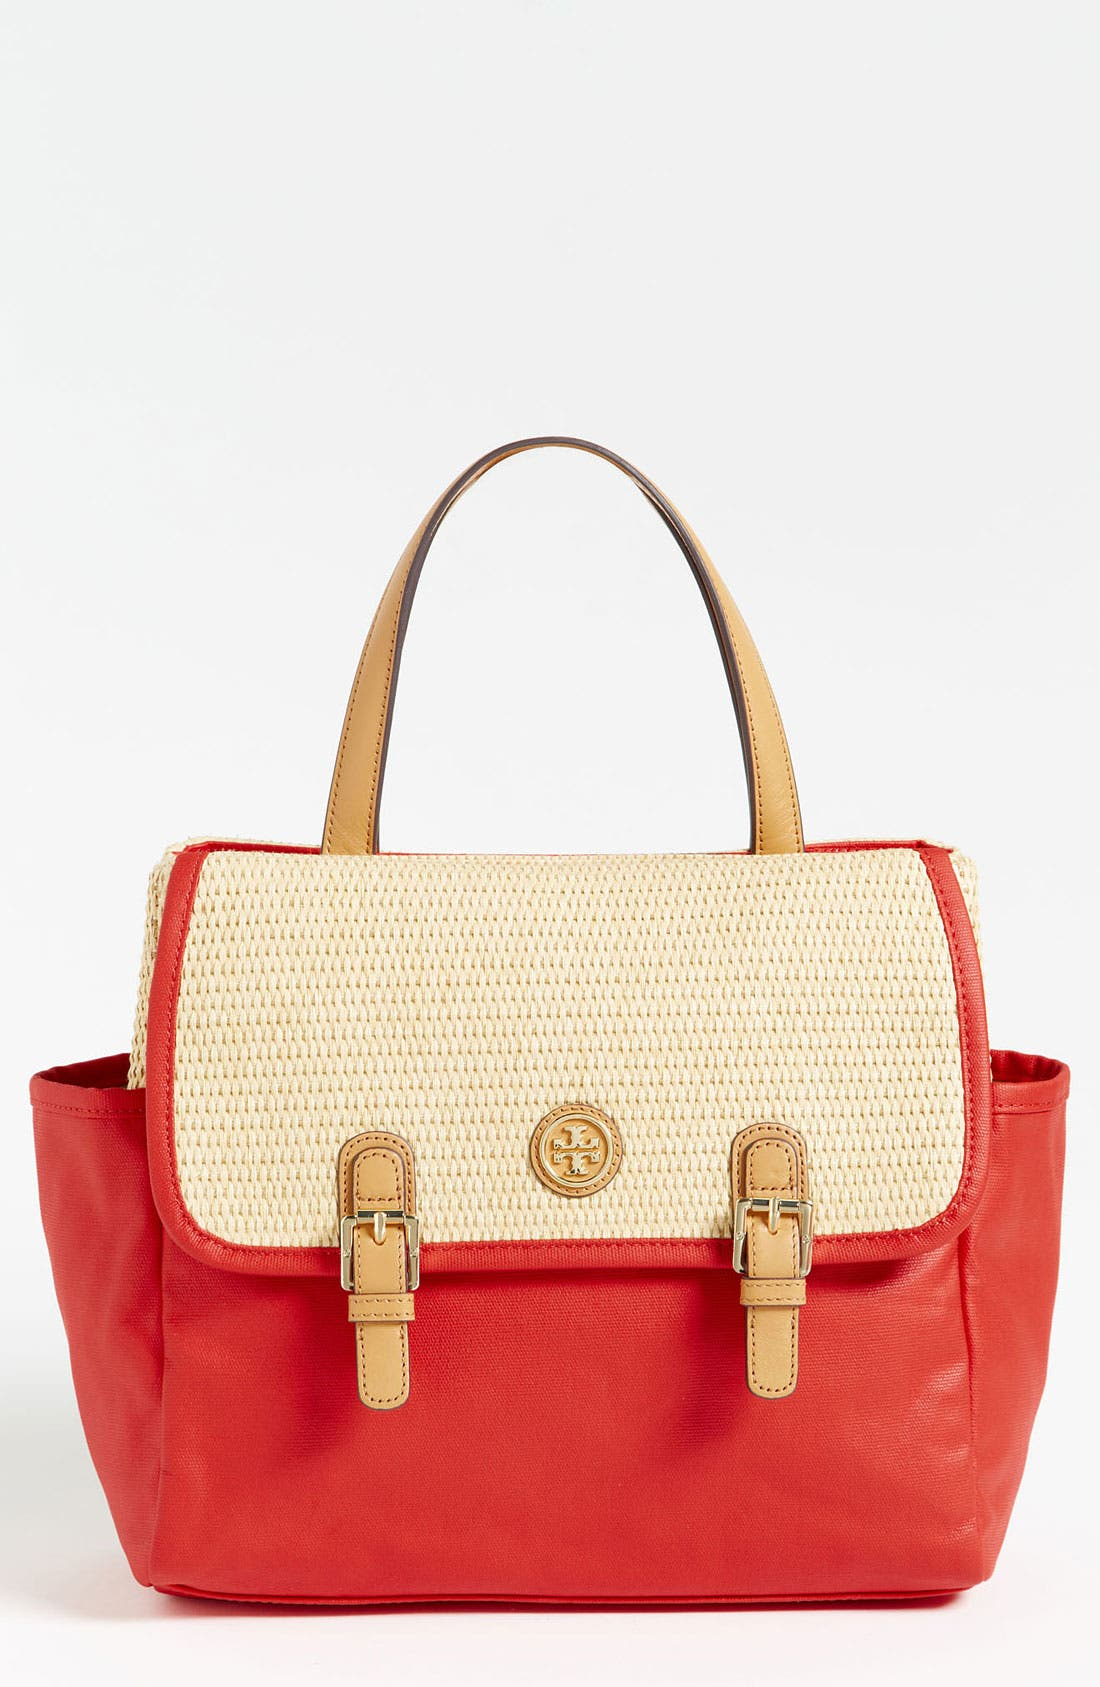 Alternate Image 1 Selected - Tory Burch 'Pierson - Mini' Beach Tote